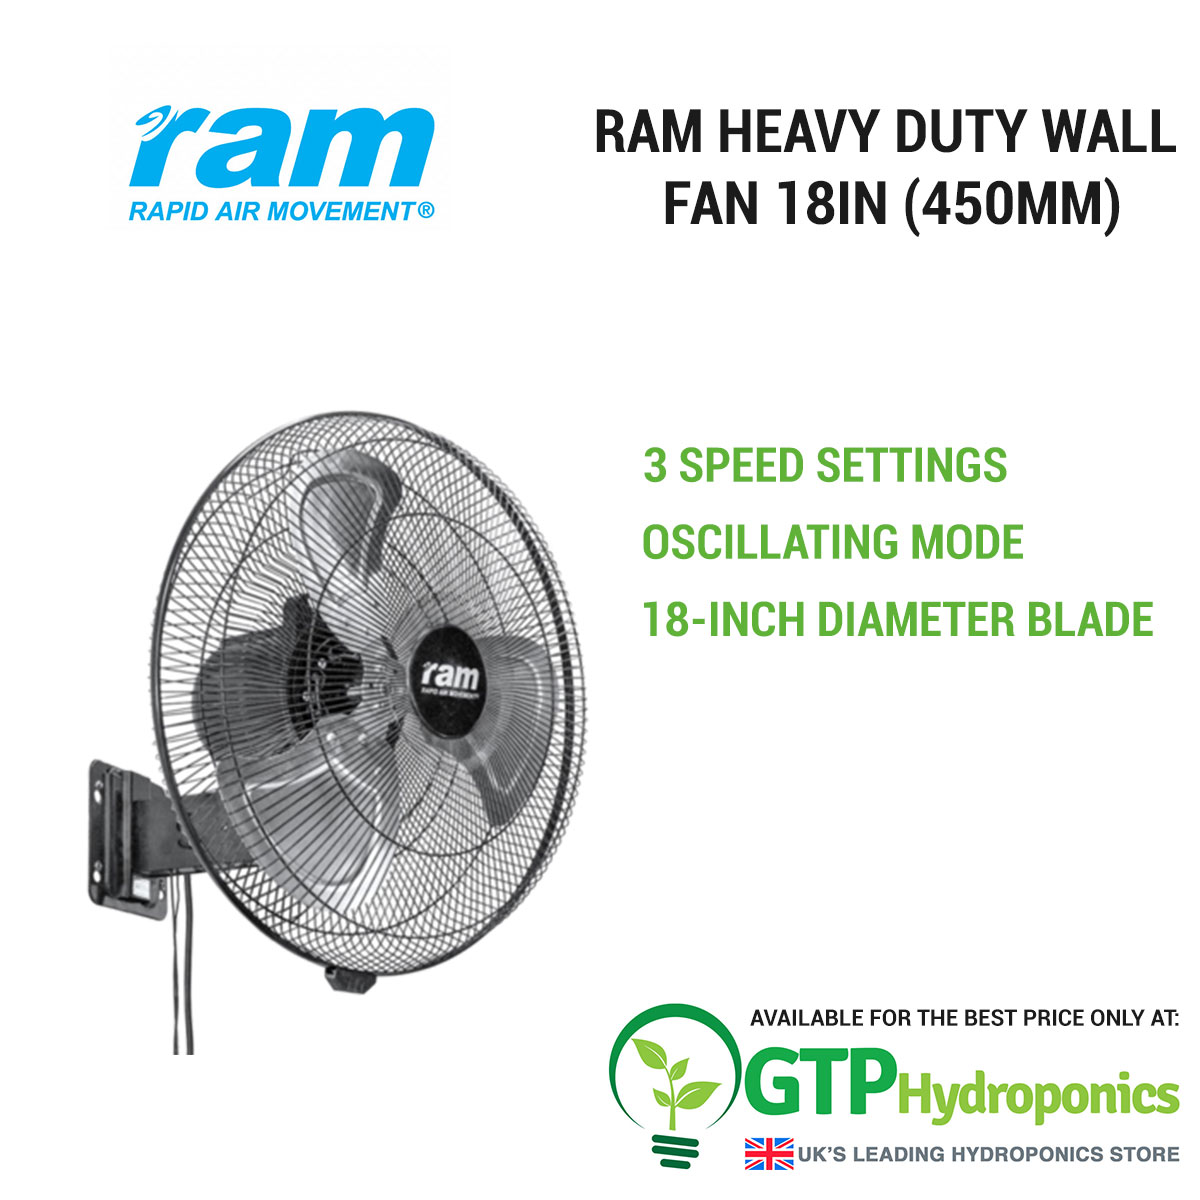 RAM Heavy Duty Wall Fan 18in (450mm) overview